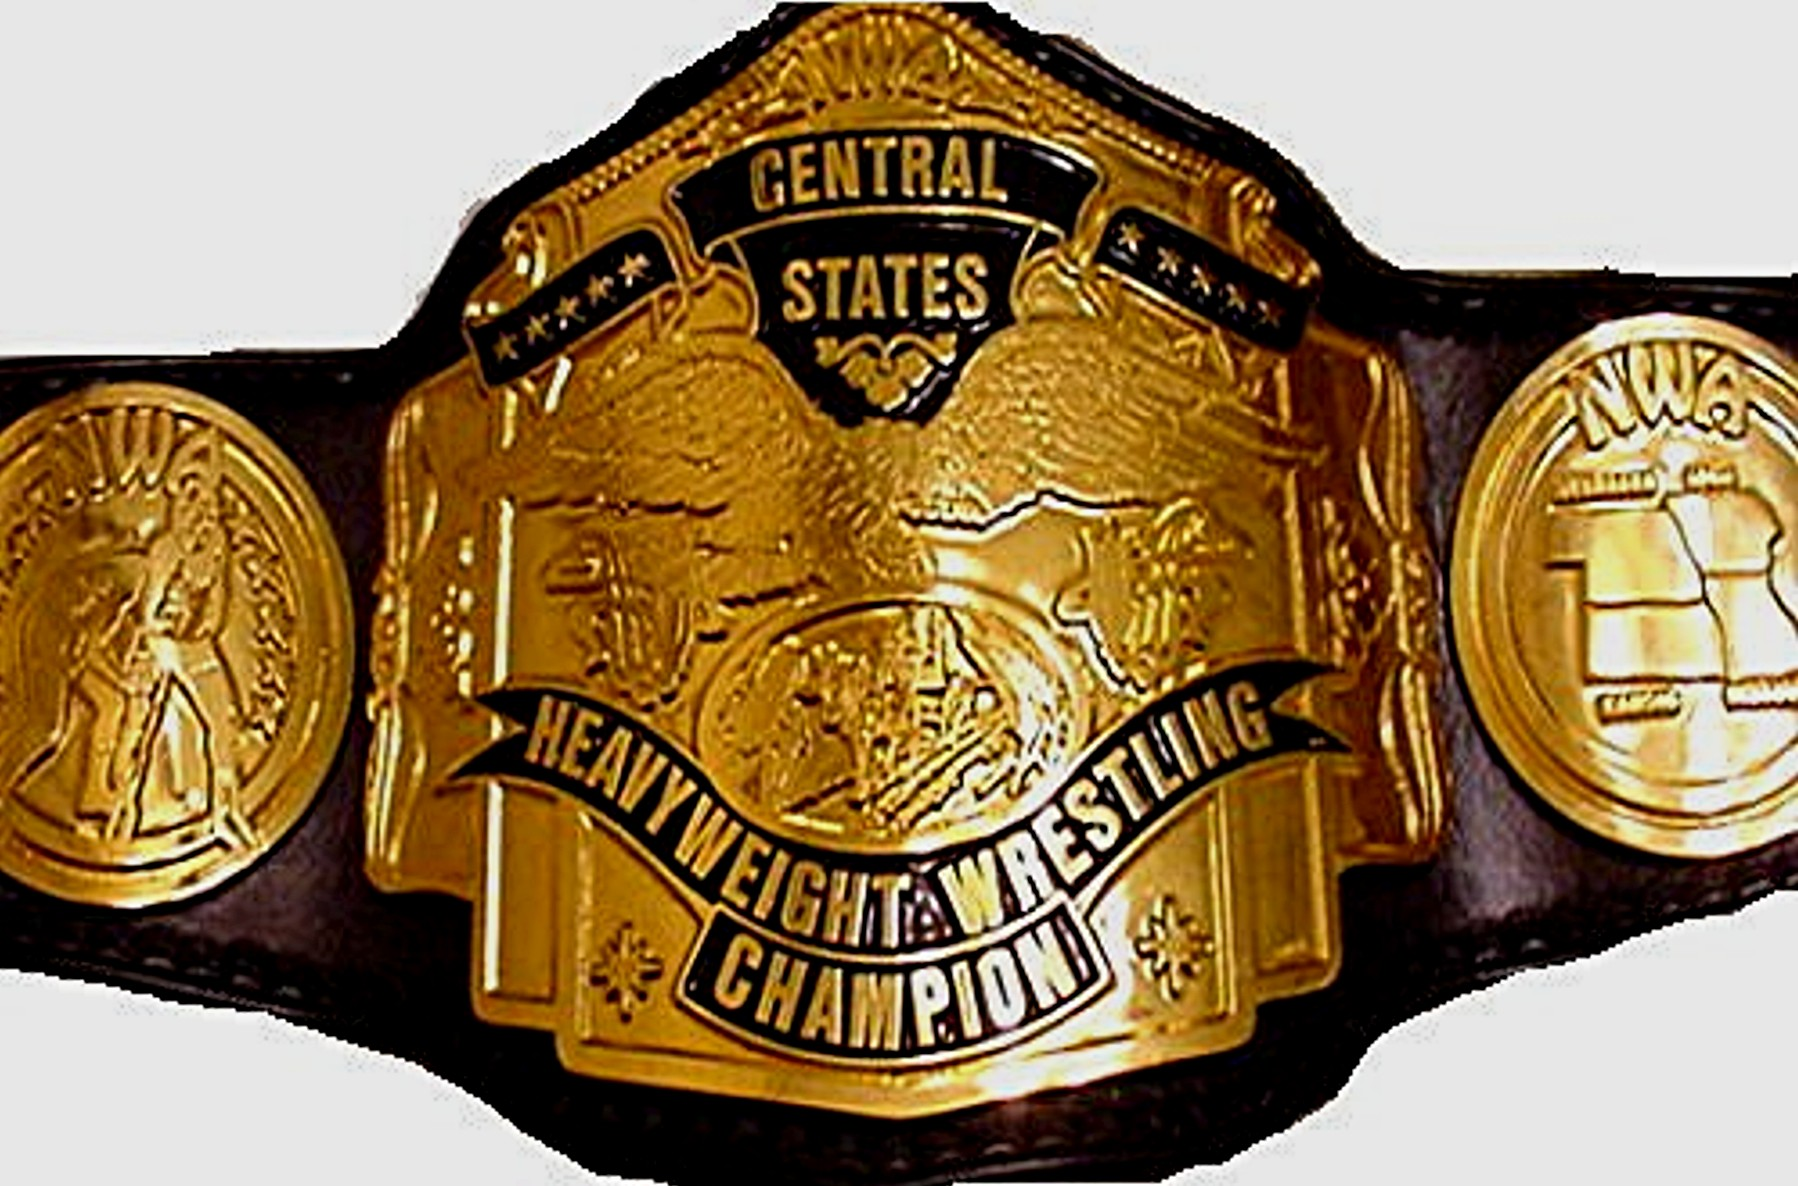 Nwa Central States Heavyweight Championship Pro